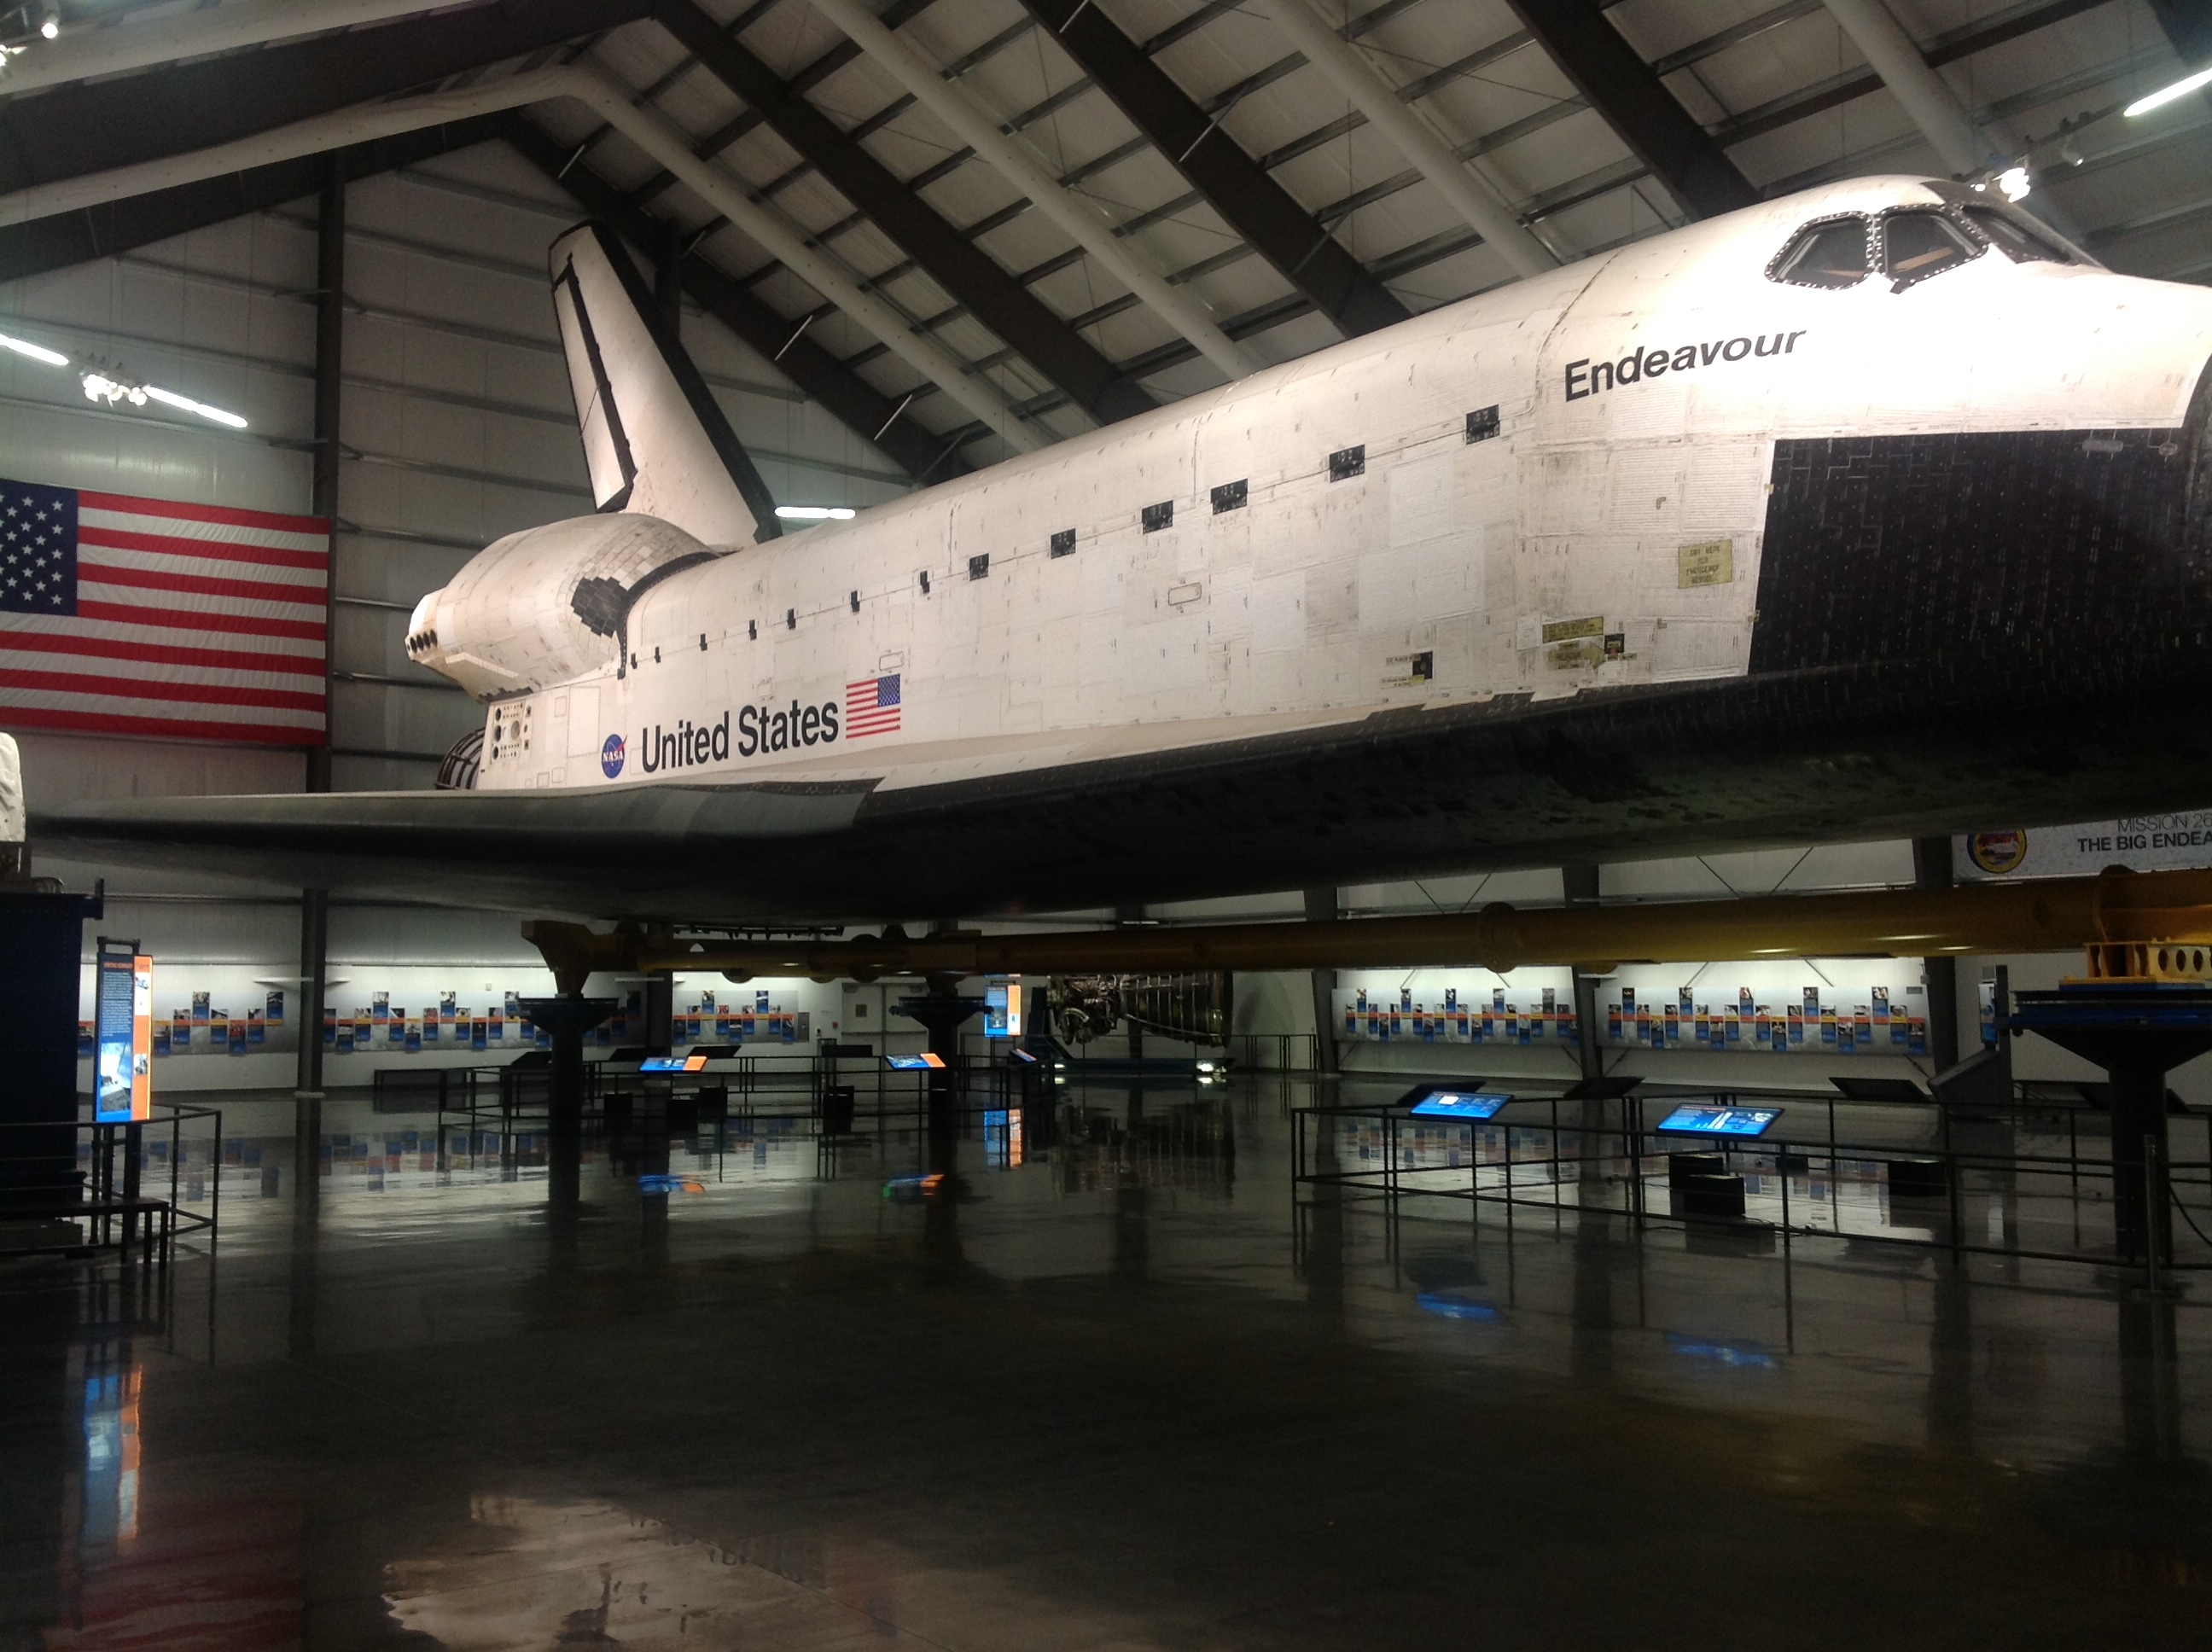 Mission 26: The Big Endeavour | Western Museums Association